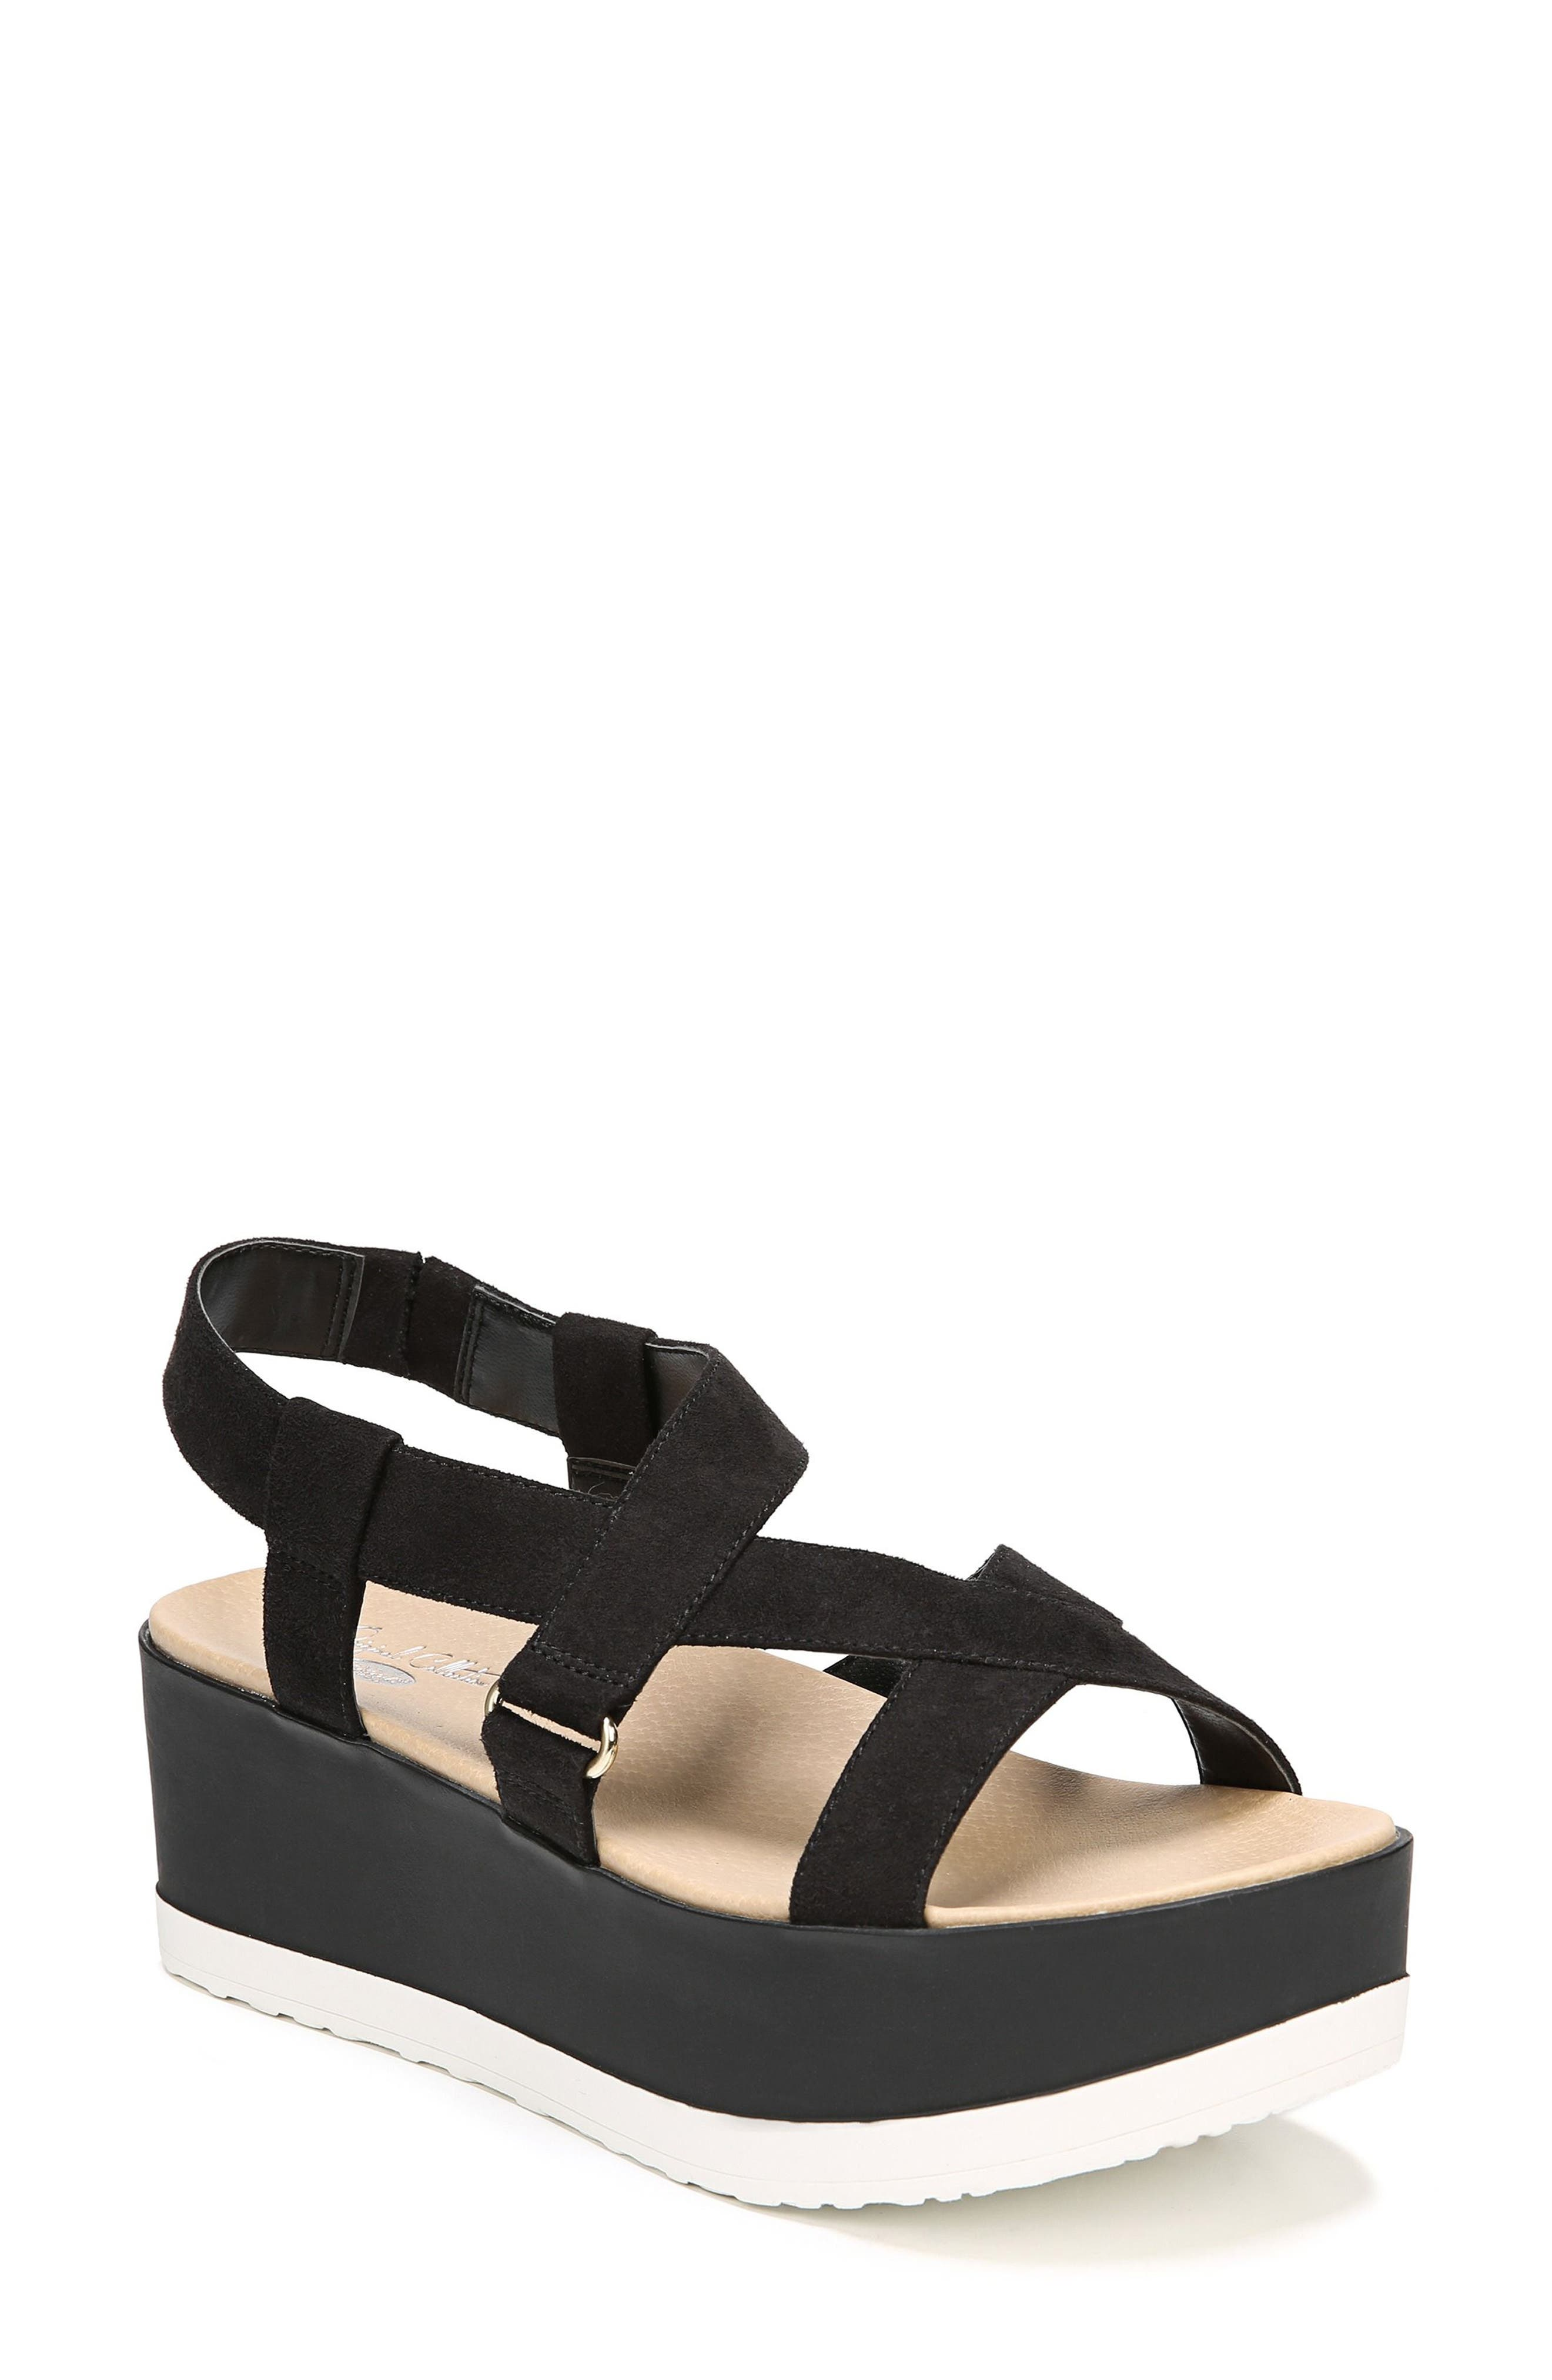 Companion Platform Sandal,                         Main,                         color, BLACK FABRIC